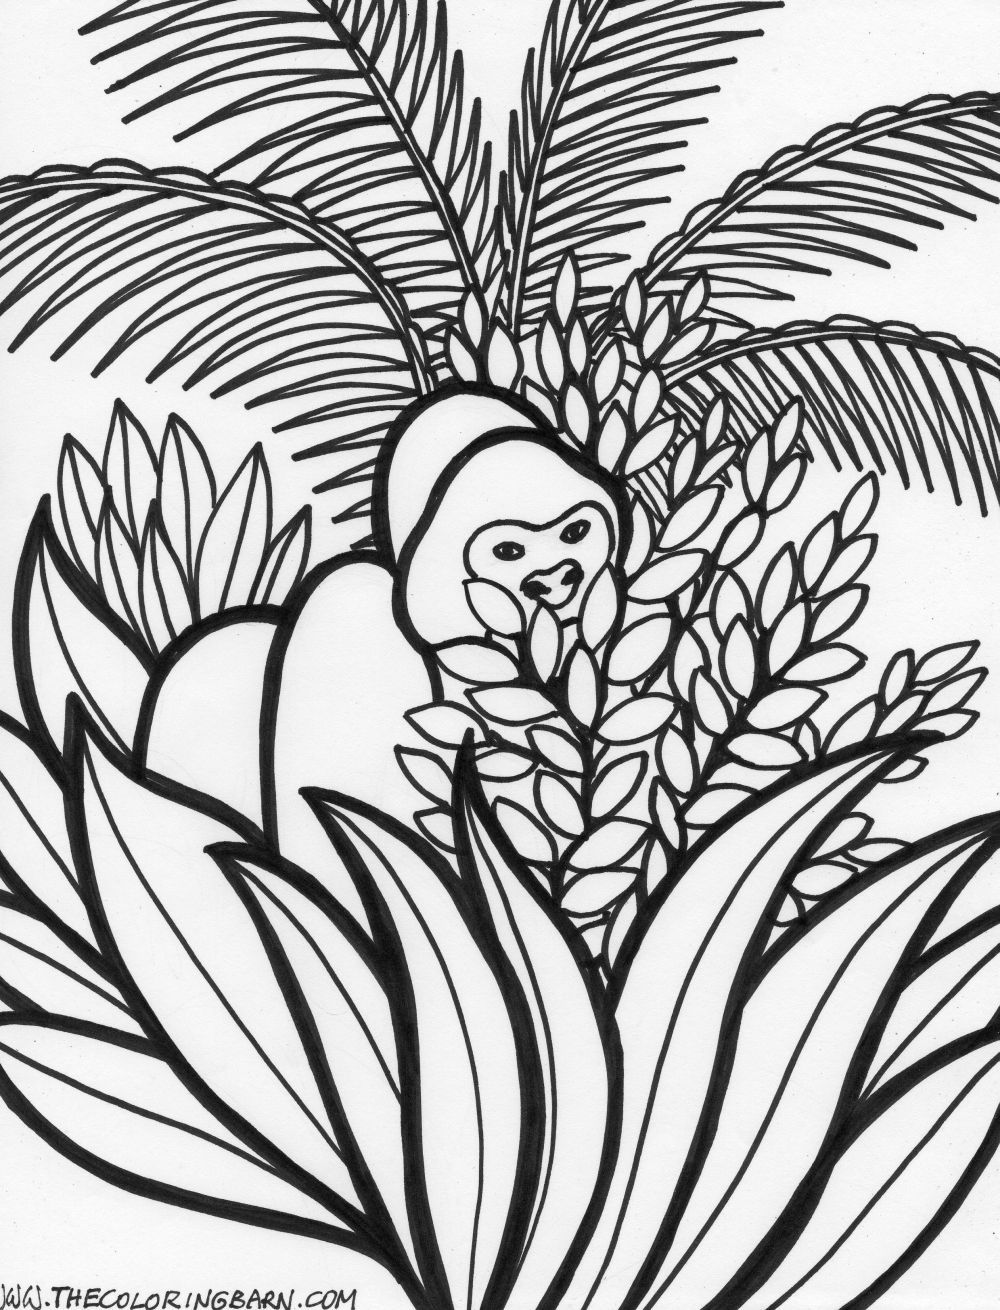 coloring pages of jungle animals rain forest the coloring barn maybe without